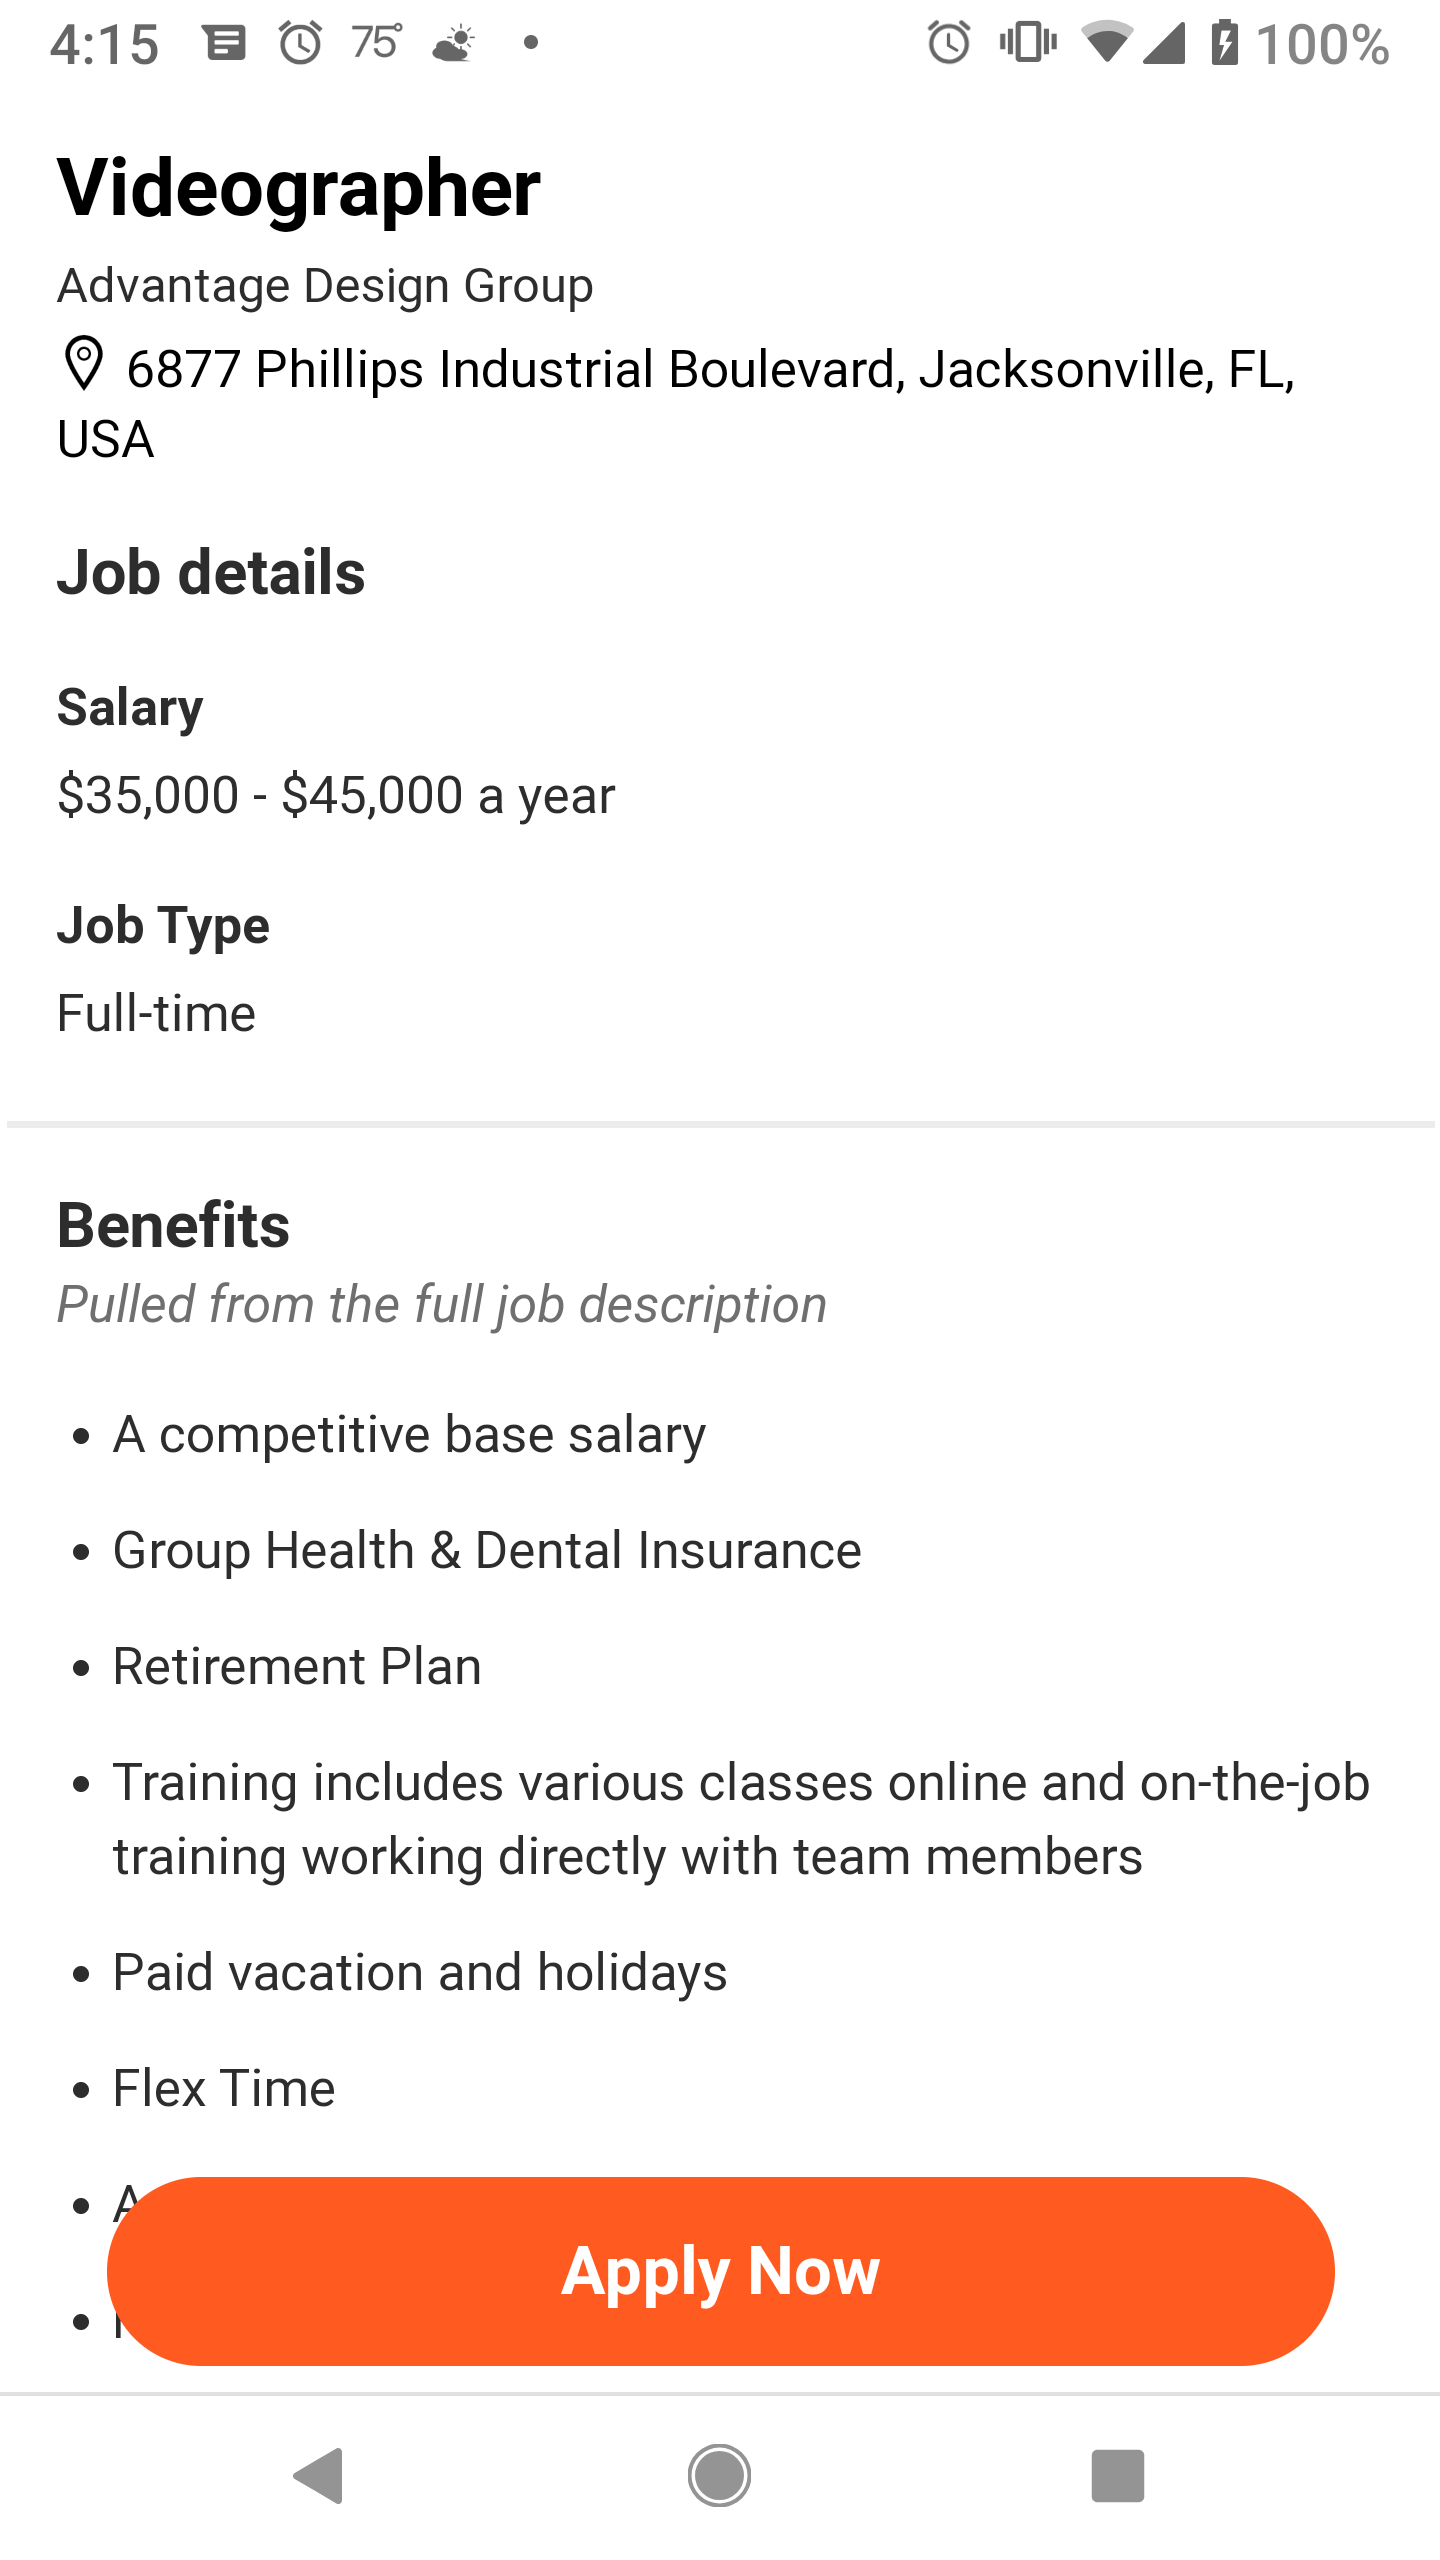 Is this really a competitive base salary for a